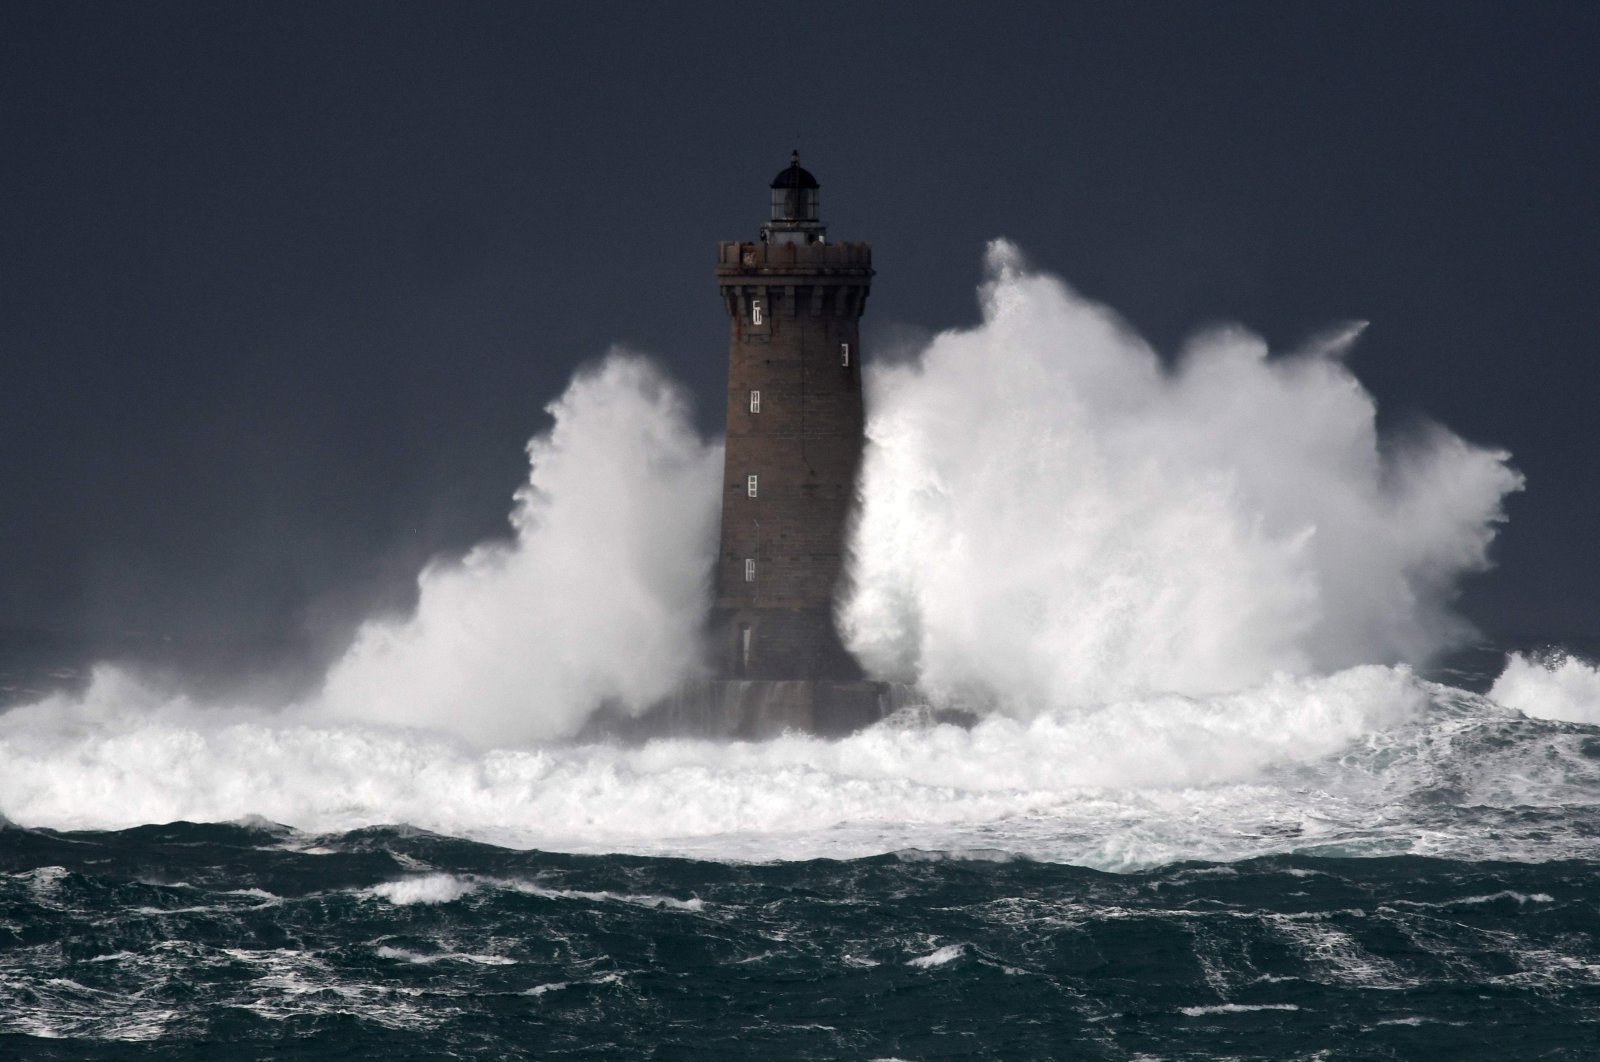 High waves and strong winds hit the Lighthouse of the Chenal du Four in Porspoder, western France, Dec. 27, 2020, as Storm Bella strikes the coast of Britanny. (AFP Photo)